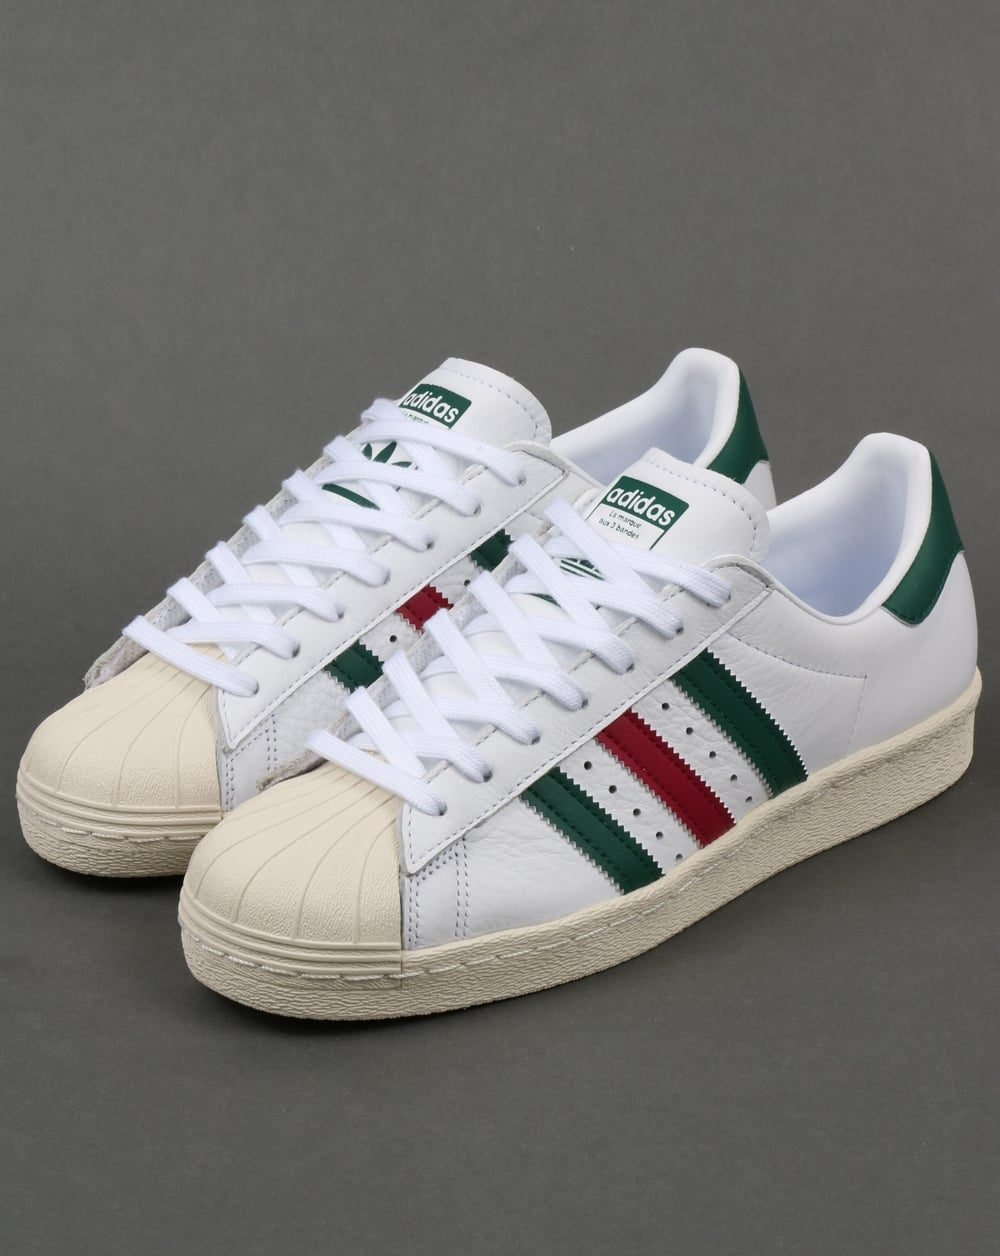 d9efce08dbbf46 Adidas Superstar 80s Trainers White Green Ruby